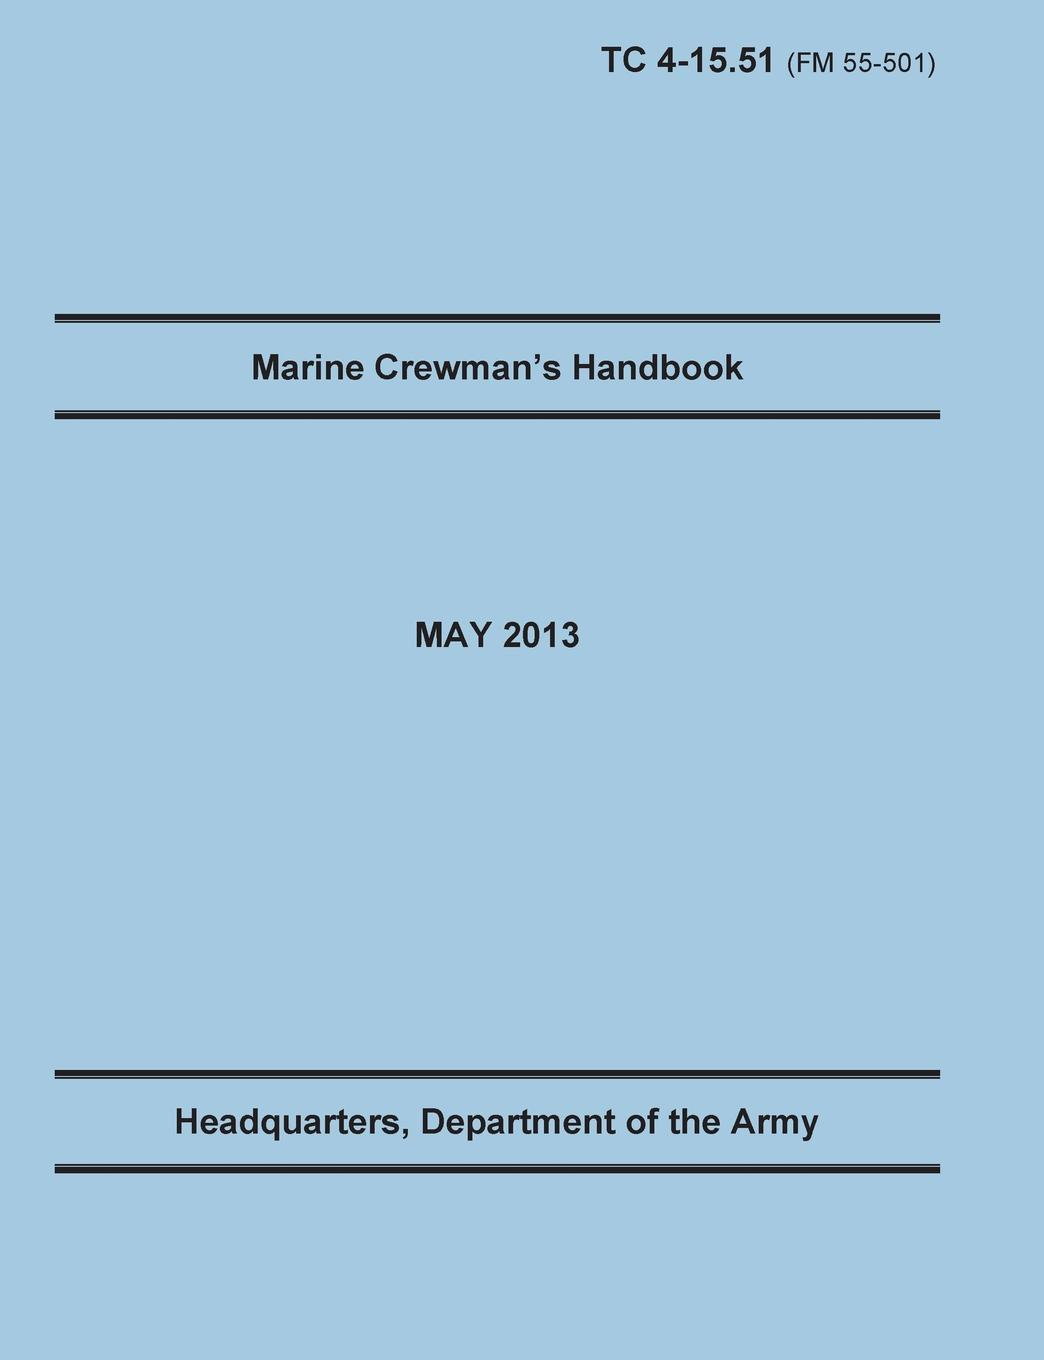 Training Doctrine and Command, United States Army Heaquarters Marine Crewman.s Handbook. The Official U.S. Army Training Manual. Training Circular TC 4-15.51 (Field Manual FM 55-501). May 2013 revision. leadership center for army and us army the u s army leadership field manual fm 22 100